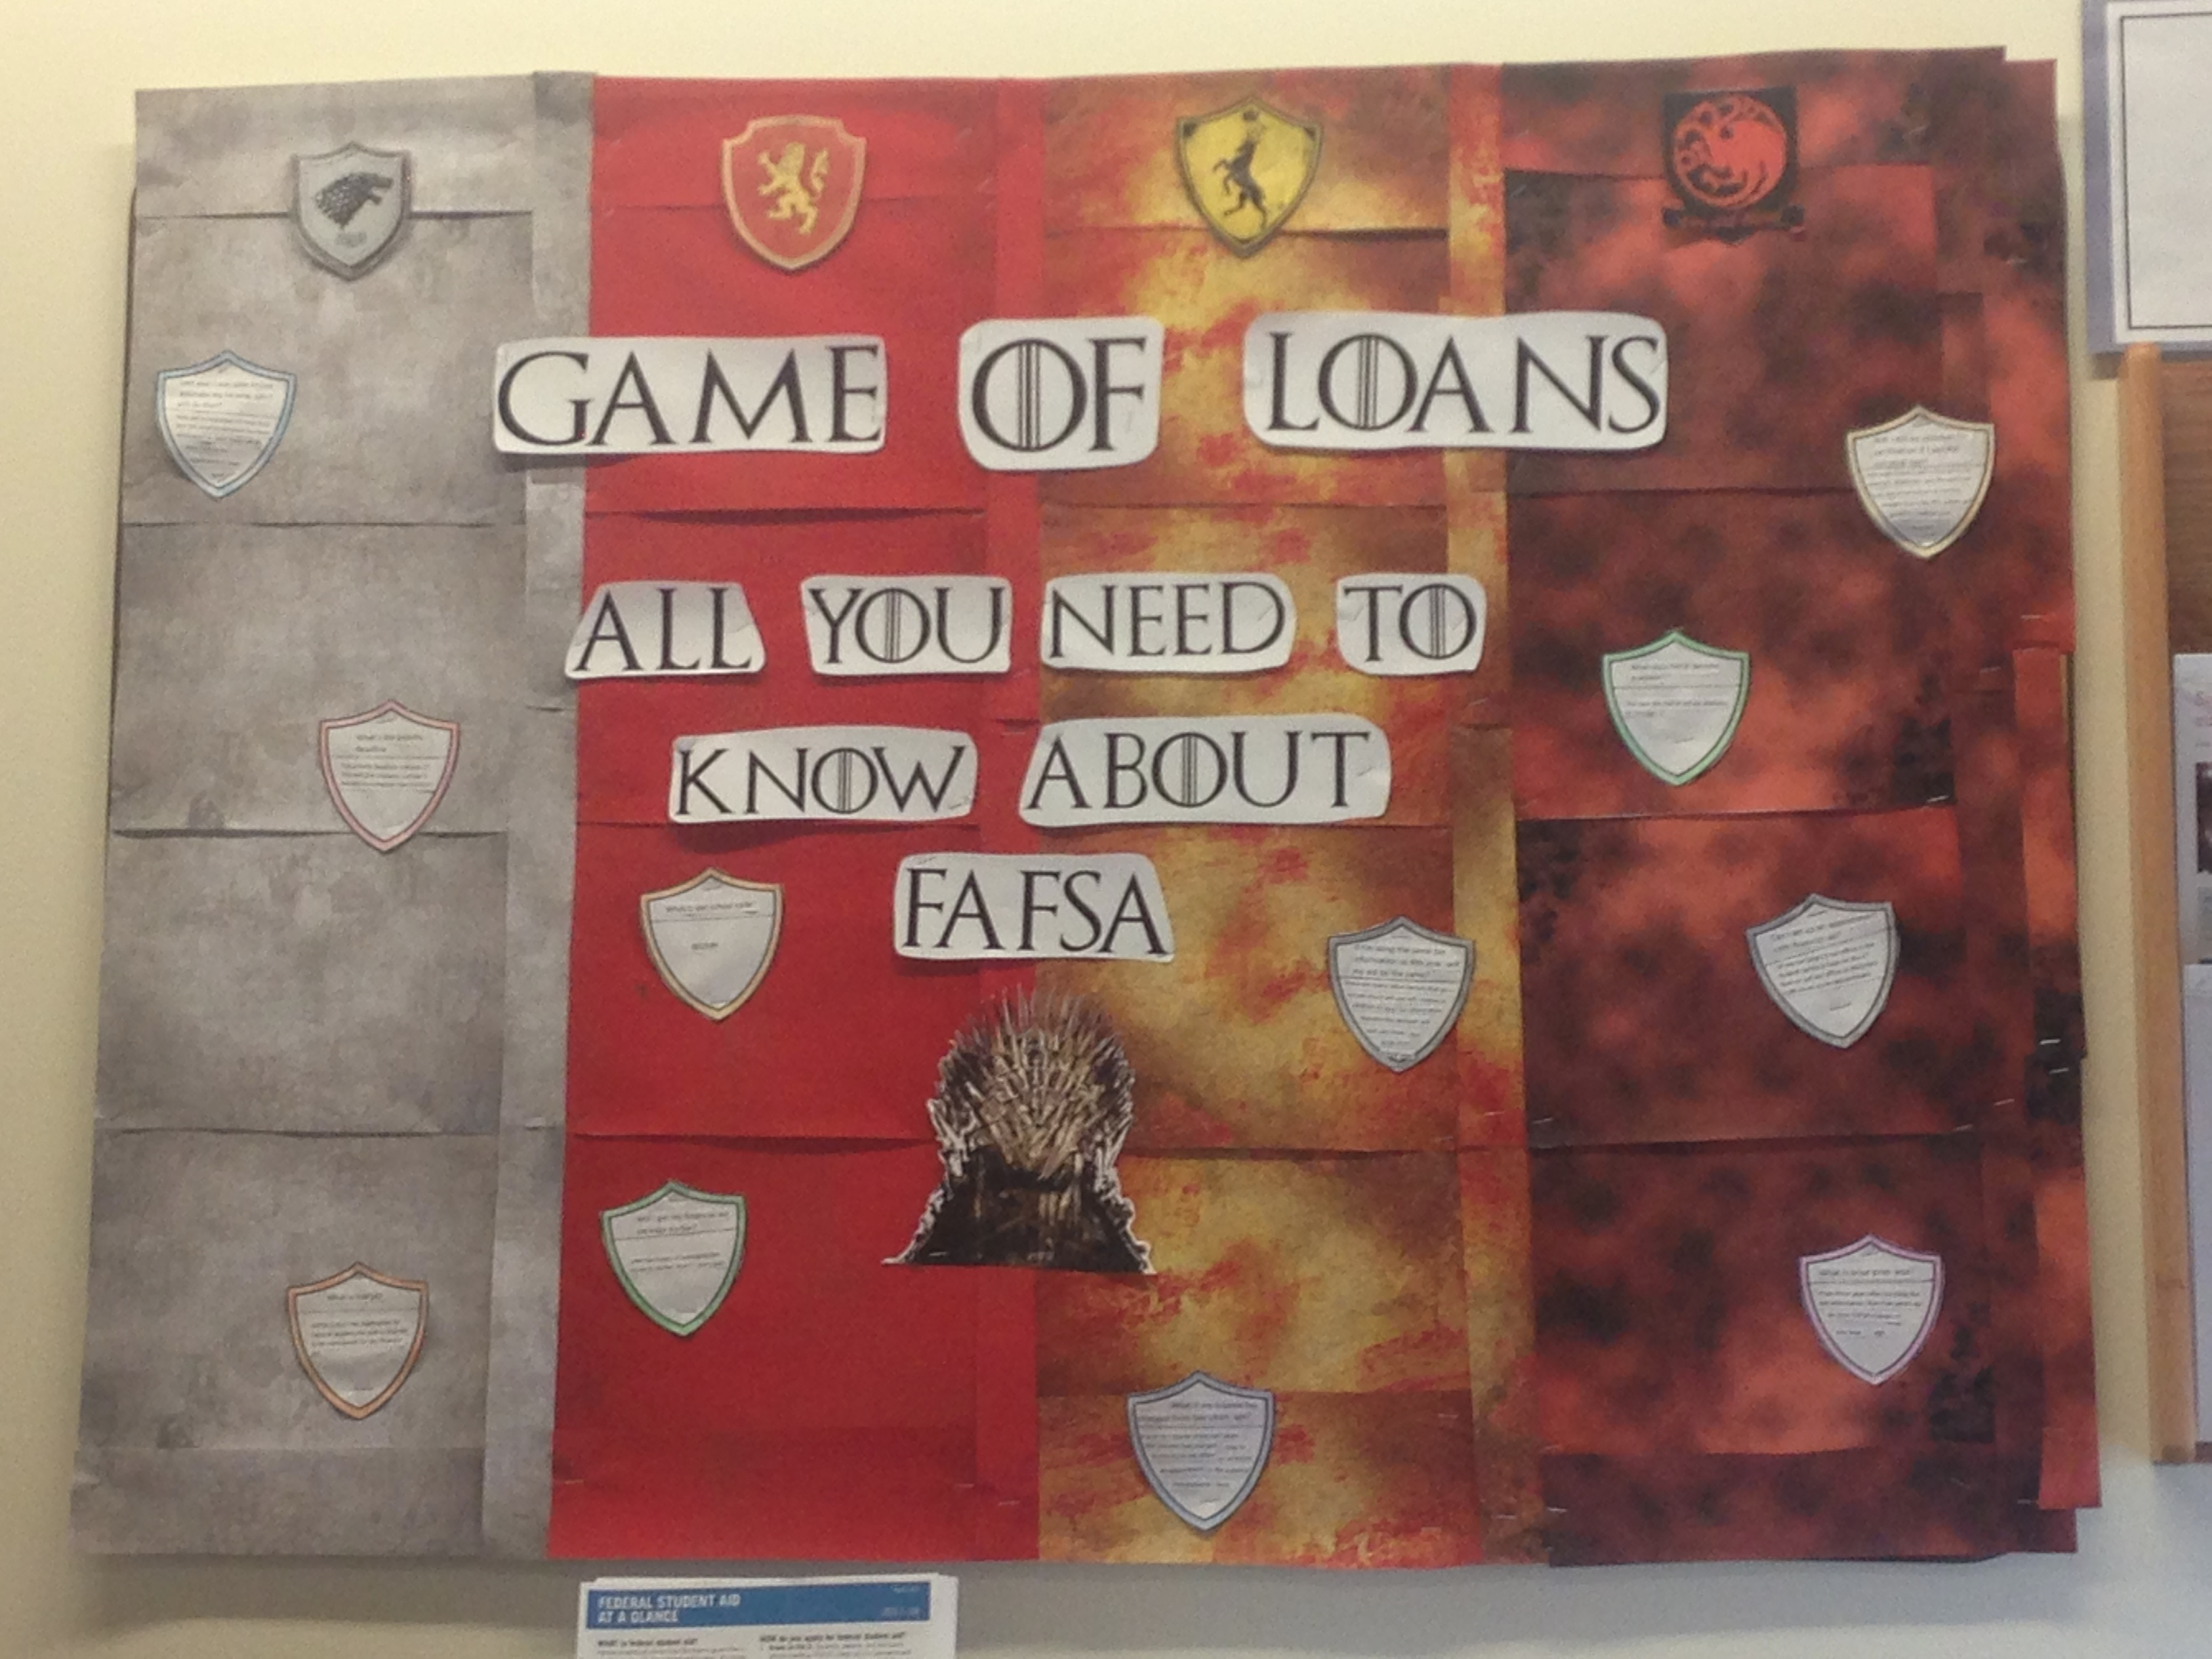 No Spoilers My Sister Works In The Financial Aid Office Of Her School She Made This Bul Ra Bulletin Boards Financial Literacy Bulletin Board Bulletin Boards